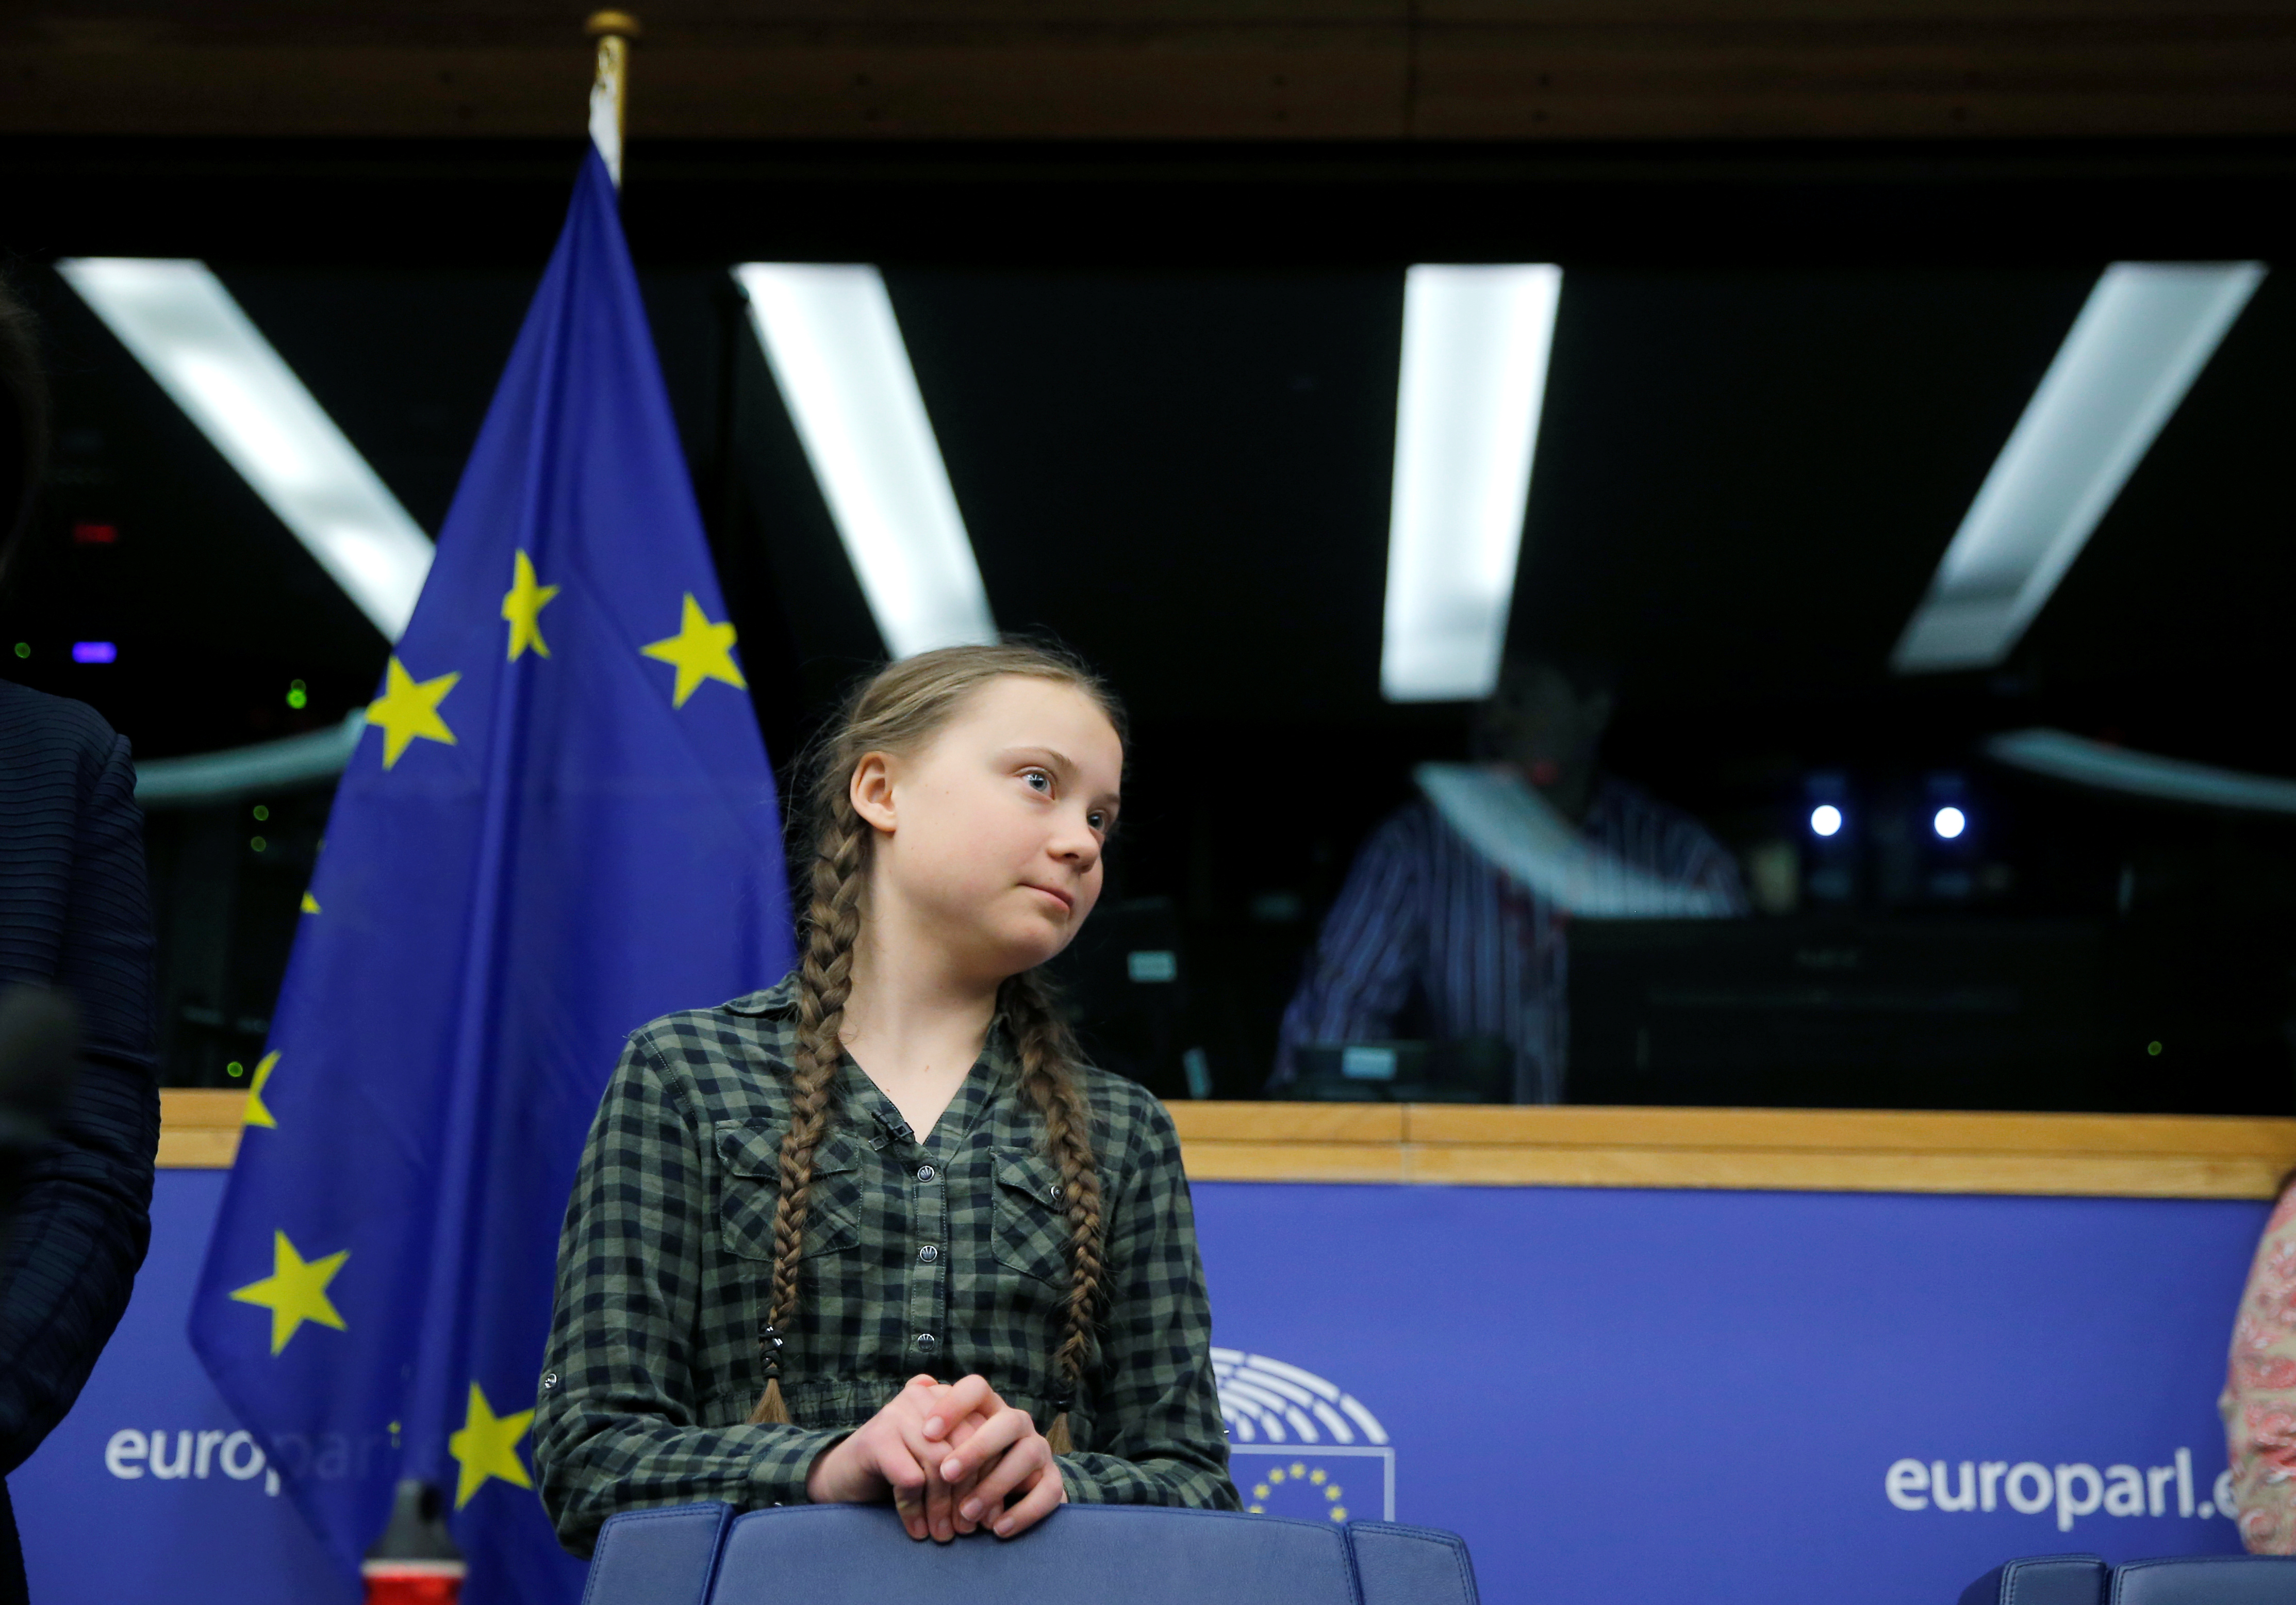 2019-04-16T130731Z_1462334744_RC17B4345290_RTRMADP_3_CLIMATE-CHANGE-TEEN-ACTIVIST-NEWSER